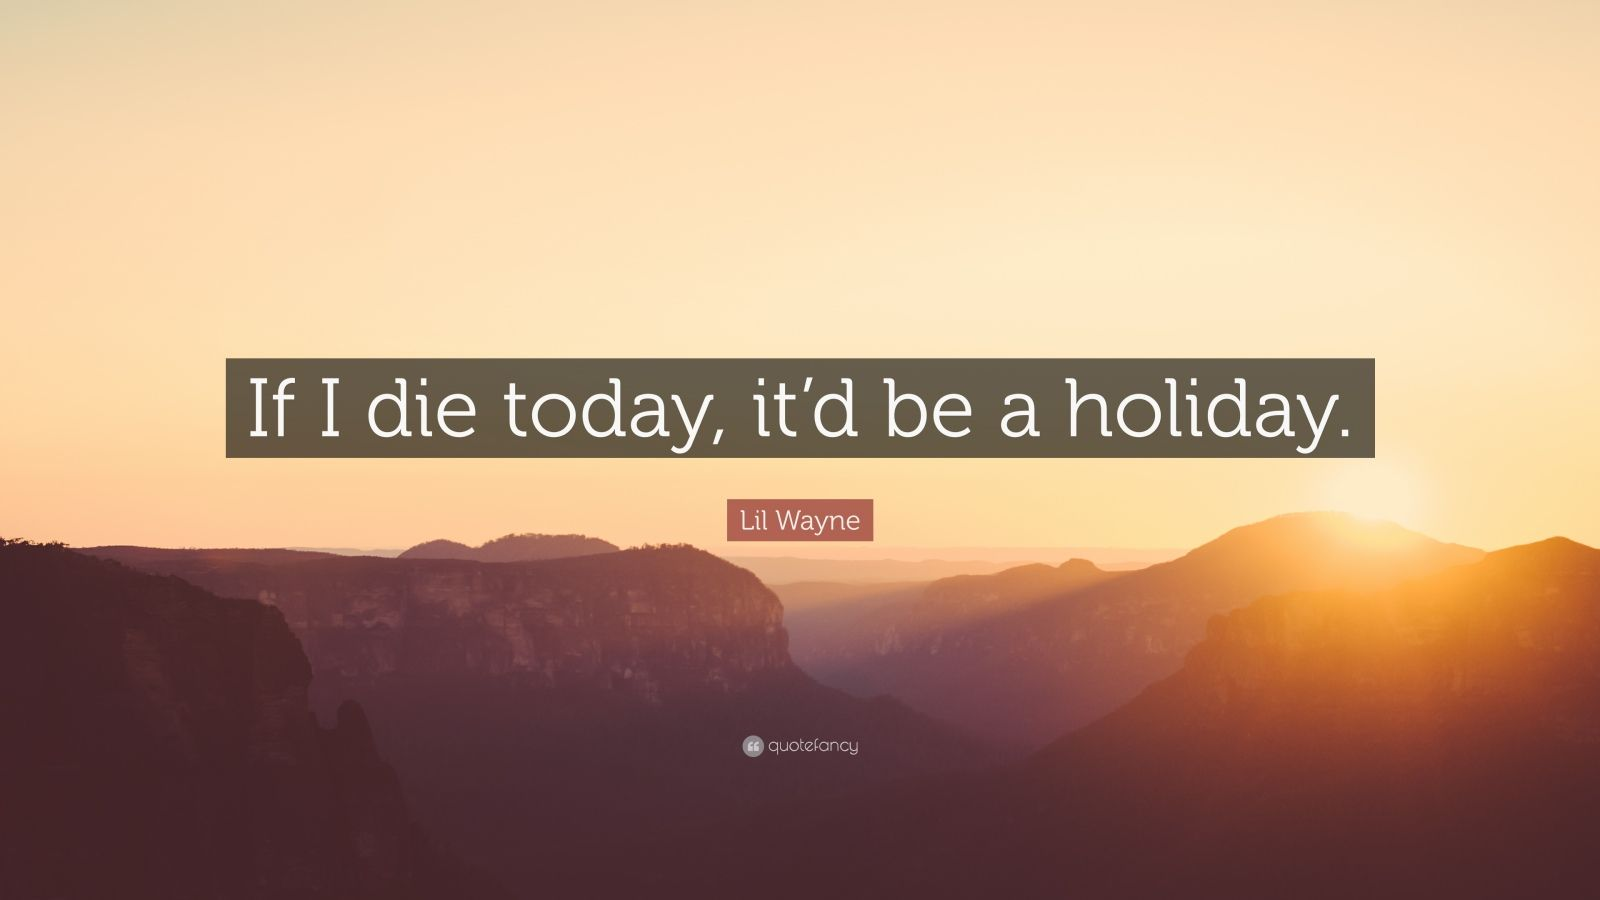 Die Wallpaper With Quotes Lil Wayne Quote If I Die Today It D Be A Holiday 12